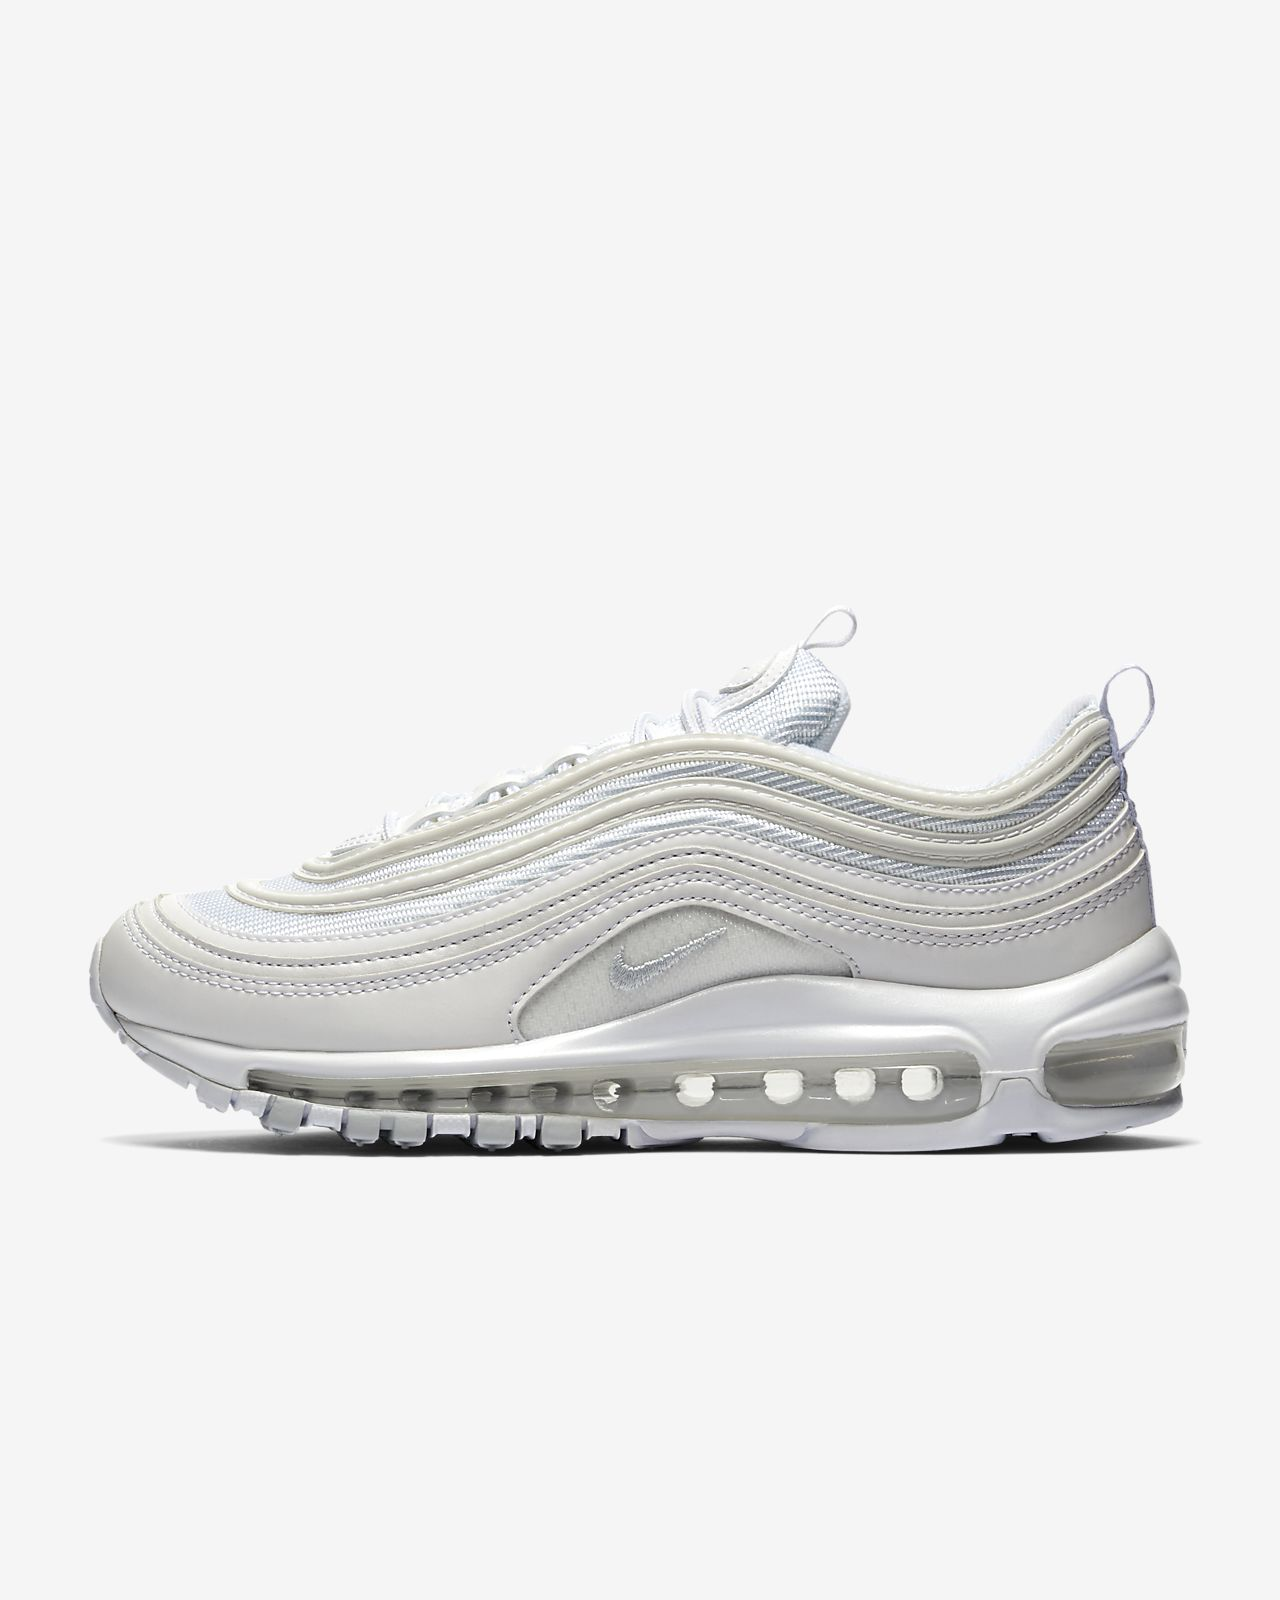 PP)+_ France [Femme] Chaussures Nike Air Max 97 Ultra